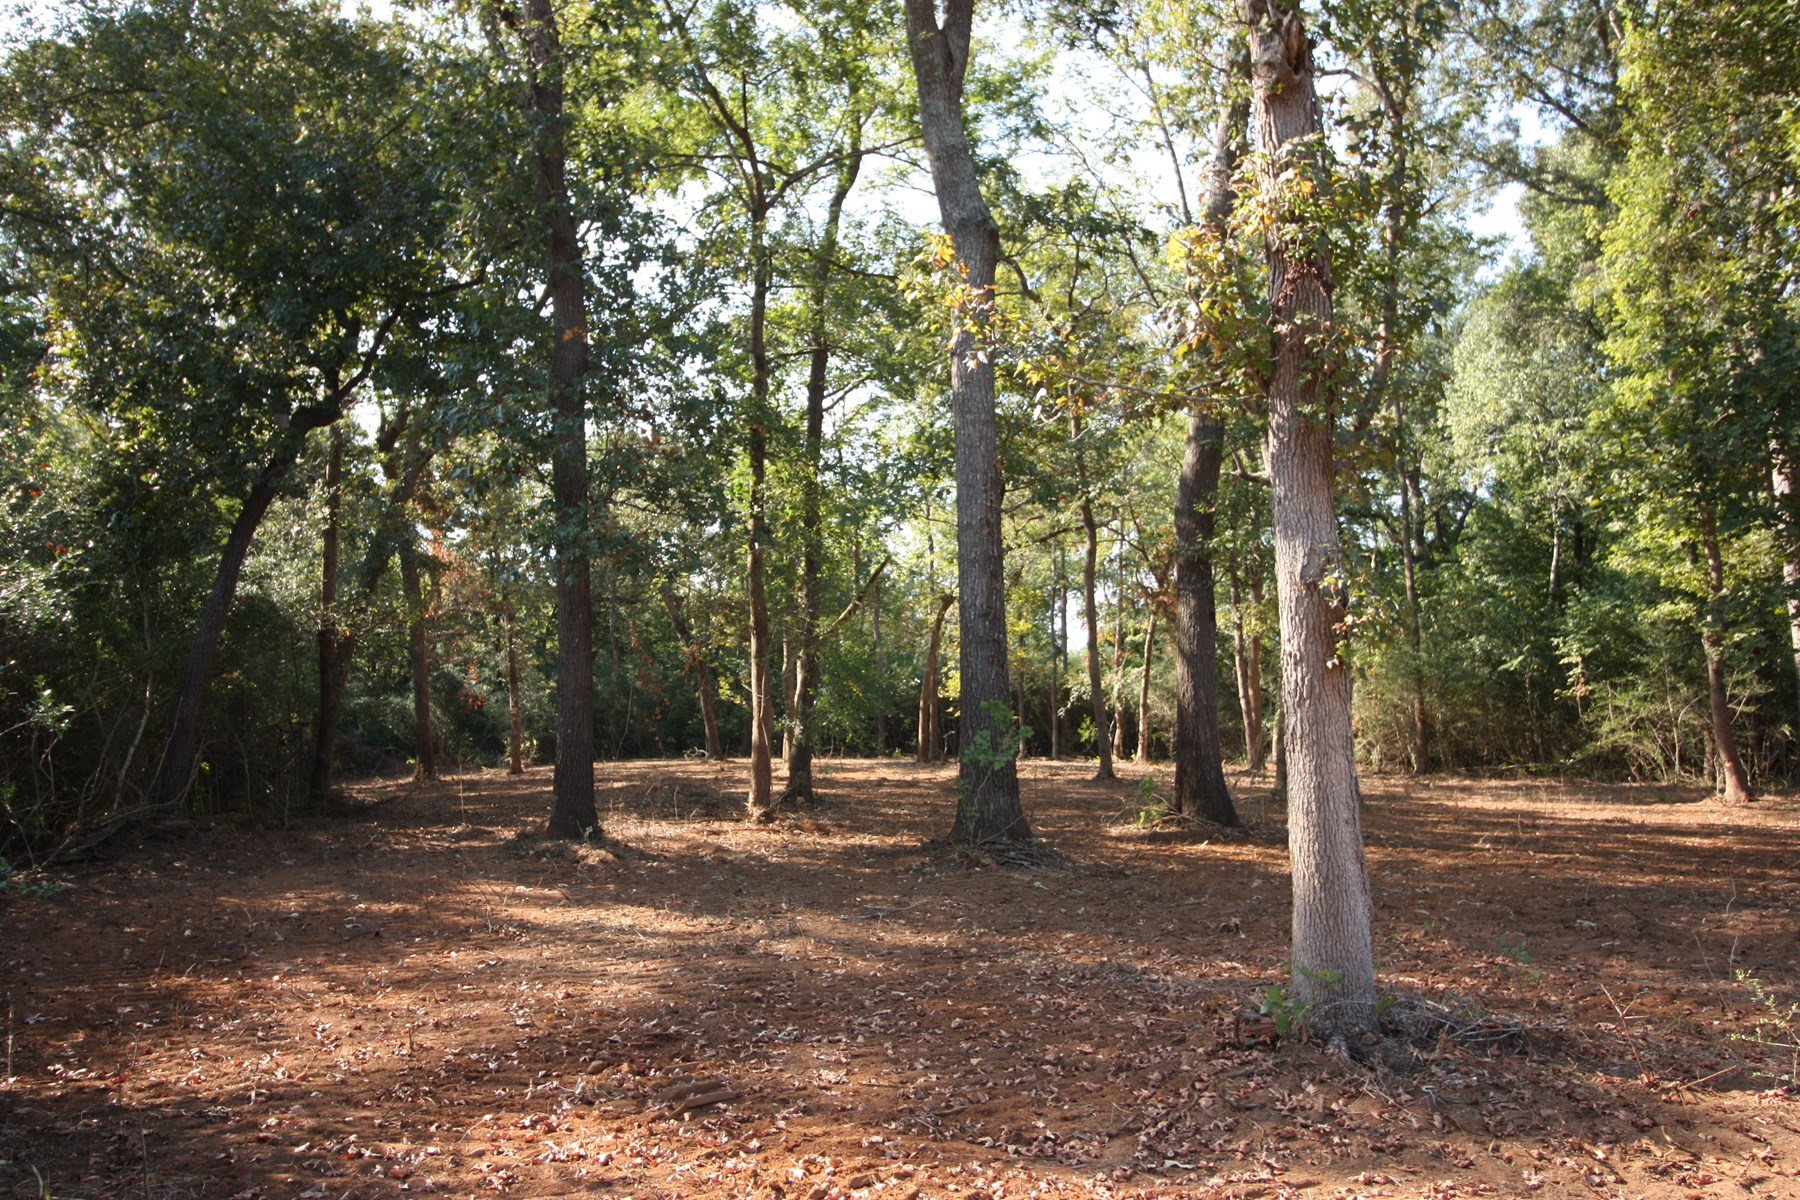 Unrestricted Land for Sale in Leon County, TX - 2.48 Acres